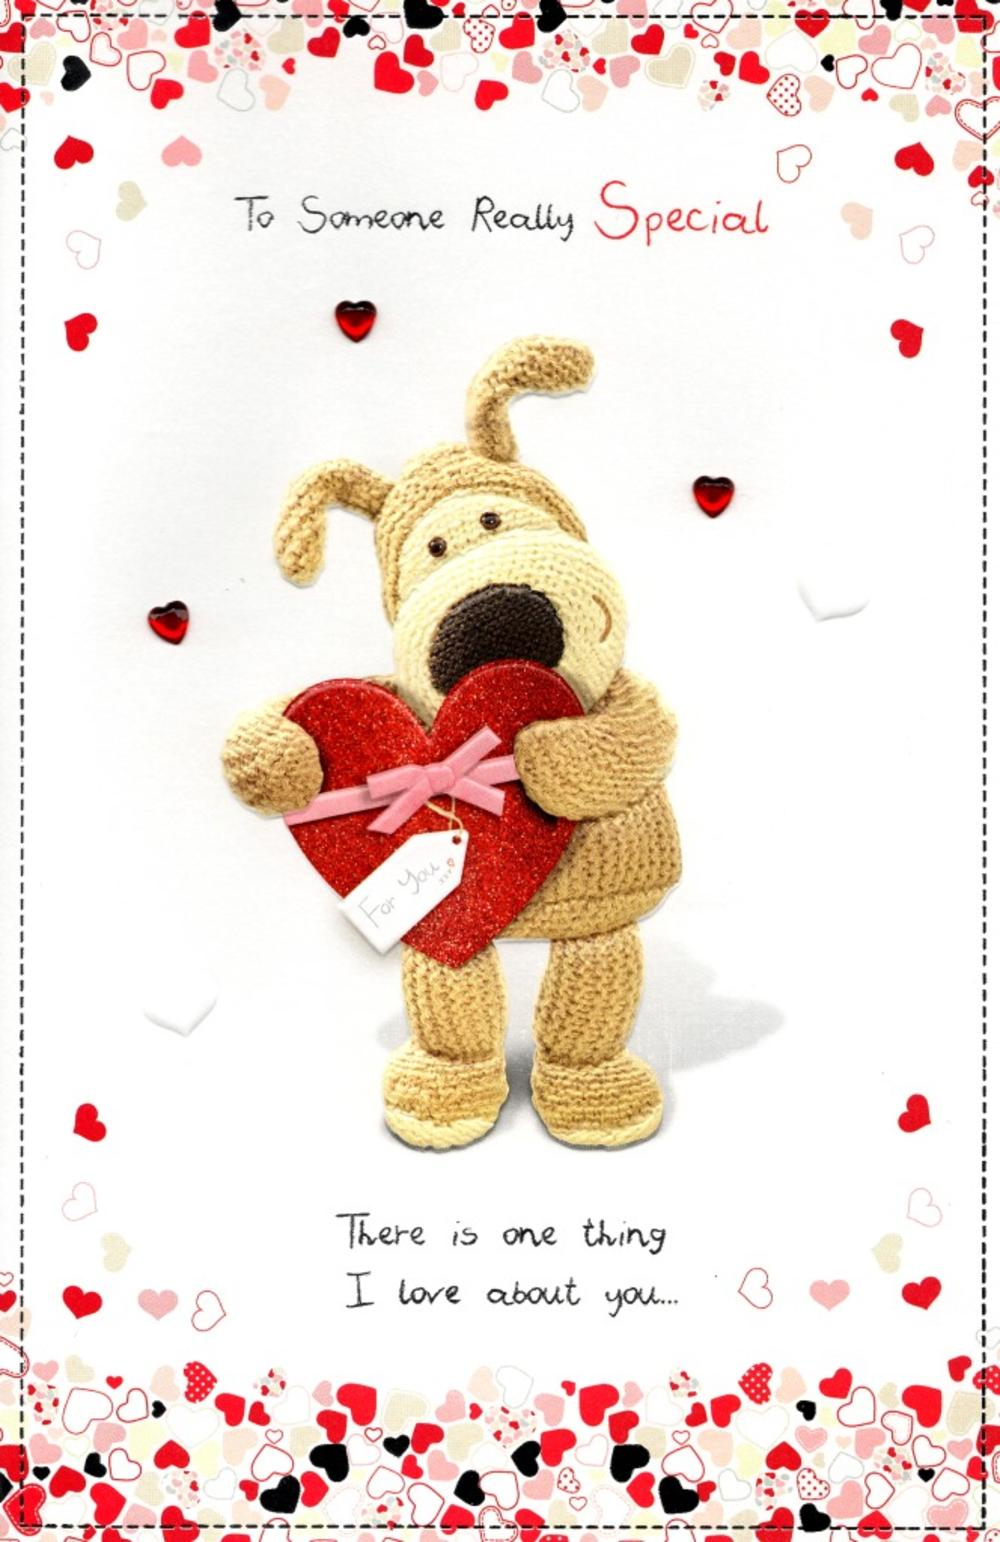 Boofle Someone Special Valentines Day Card Cards – Special Birthday Cards for Someone Special